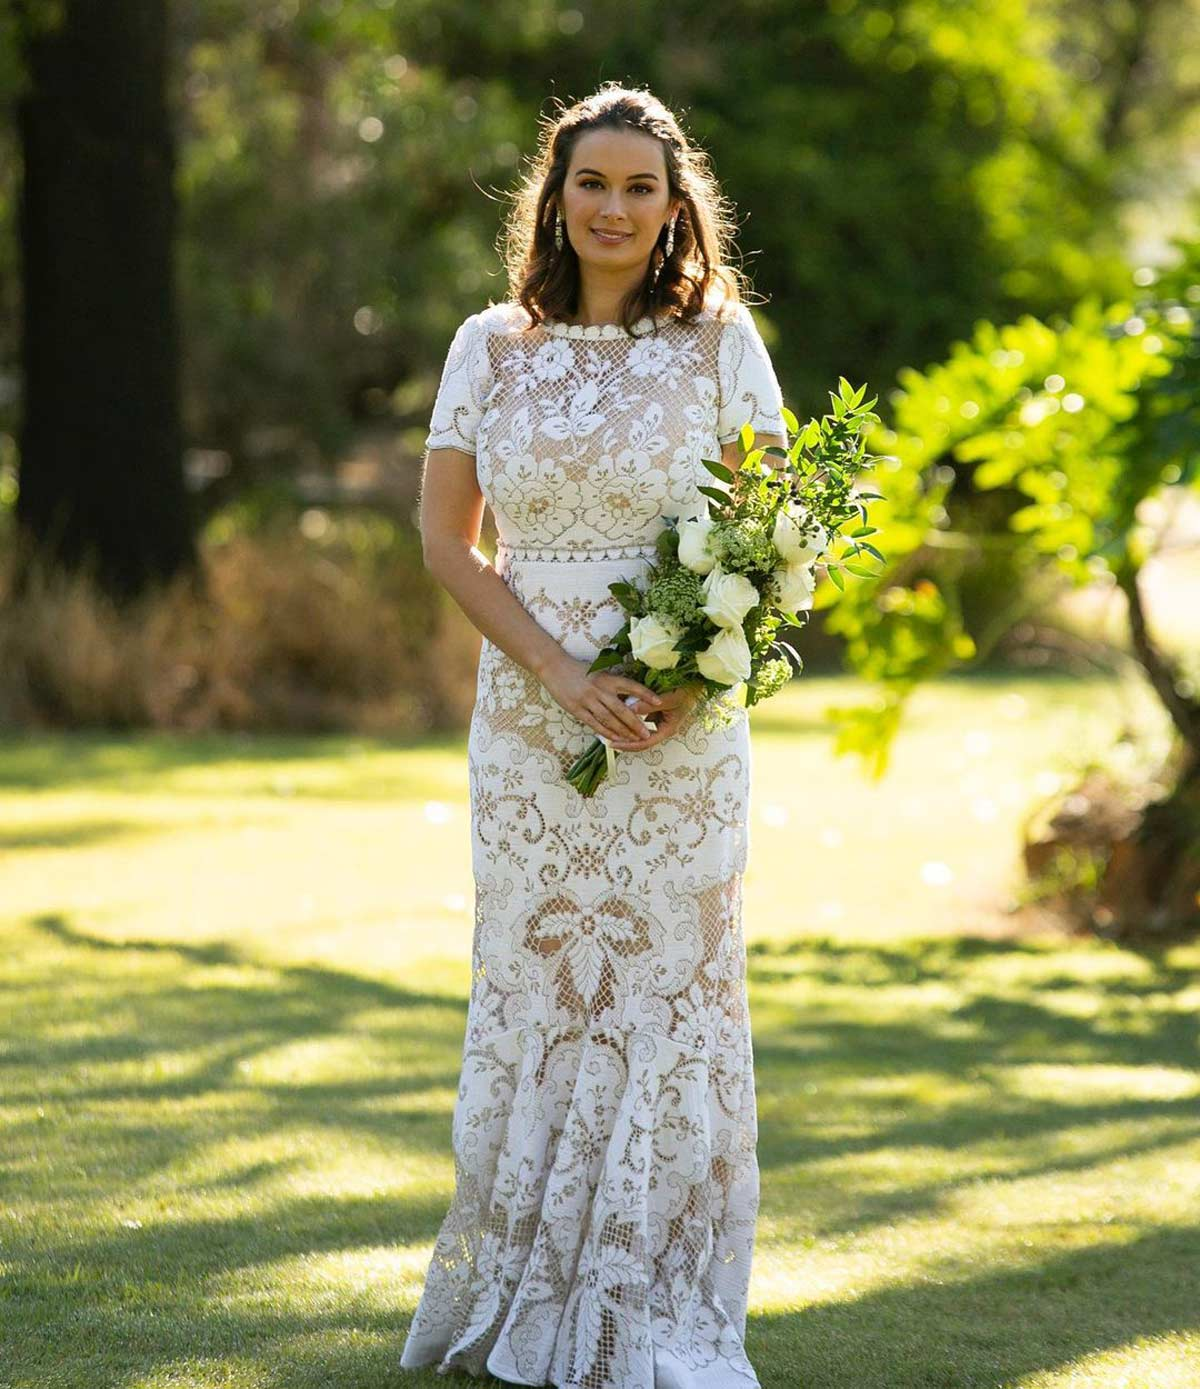 The story behind Evelyn's wedding gown